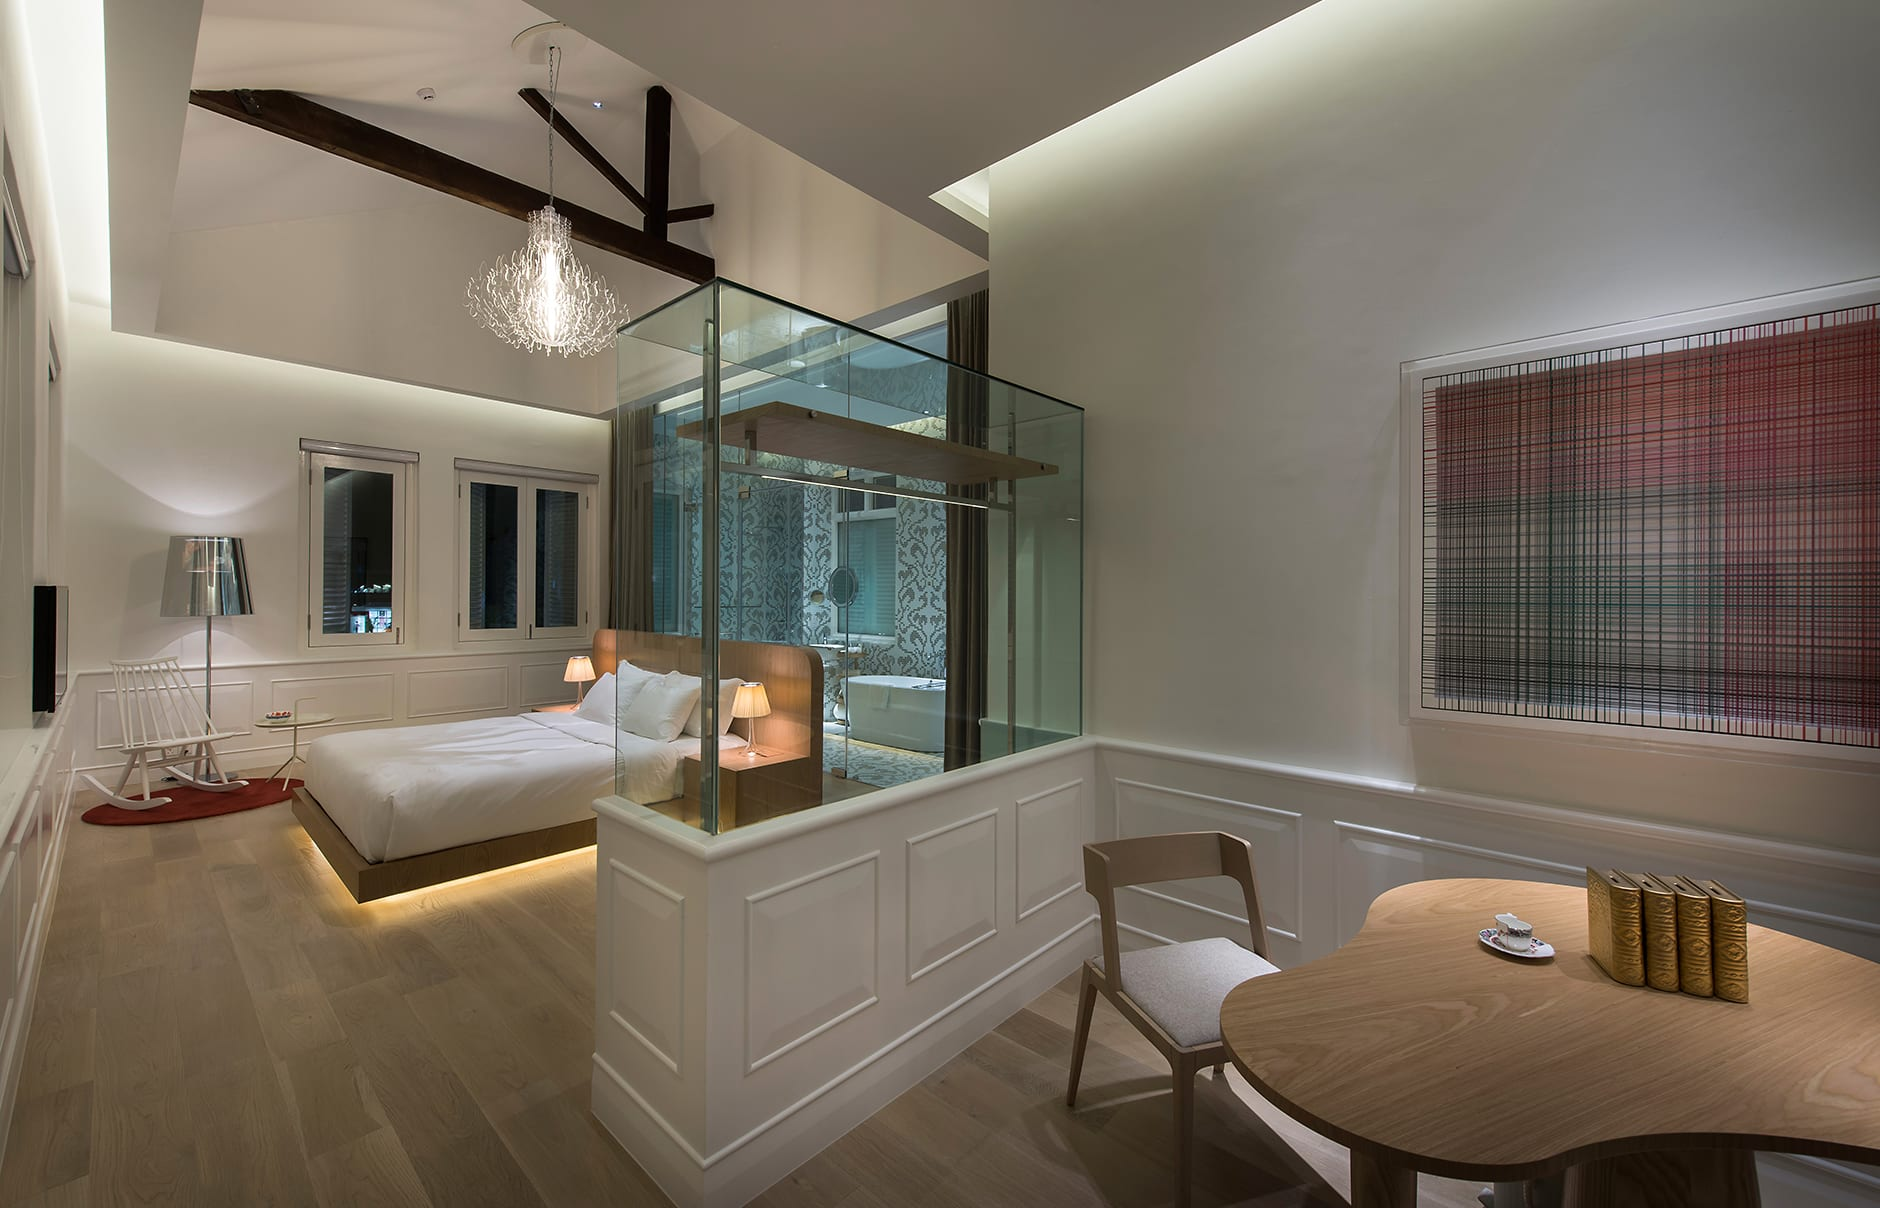 Room 7. Macalister Mansion, Georgetown, Penang, Malaysia. © Macalister Mansion